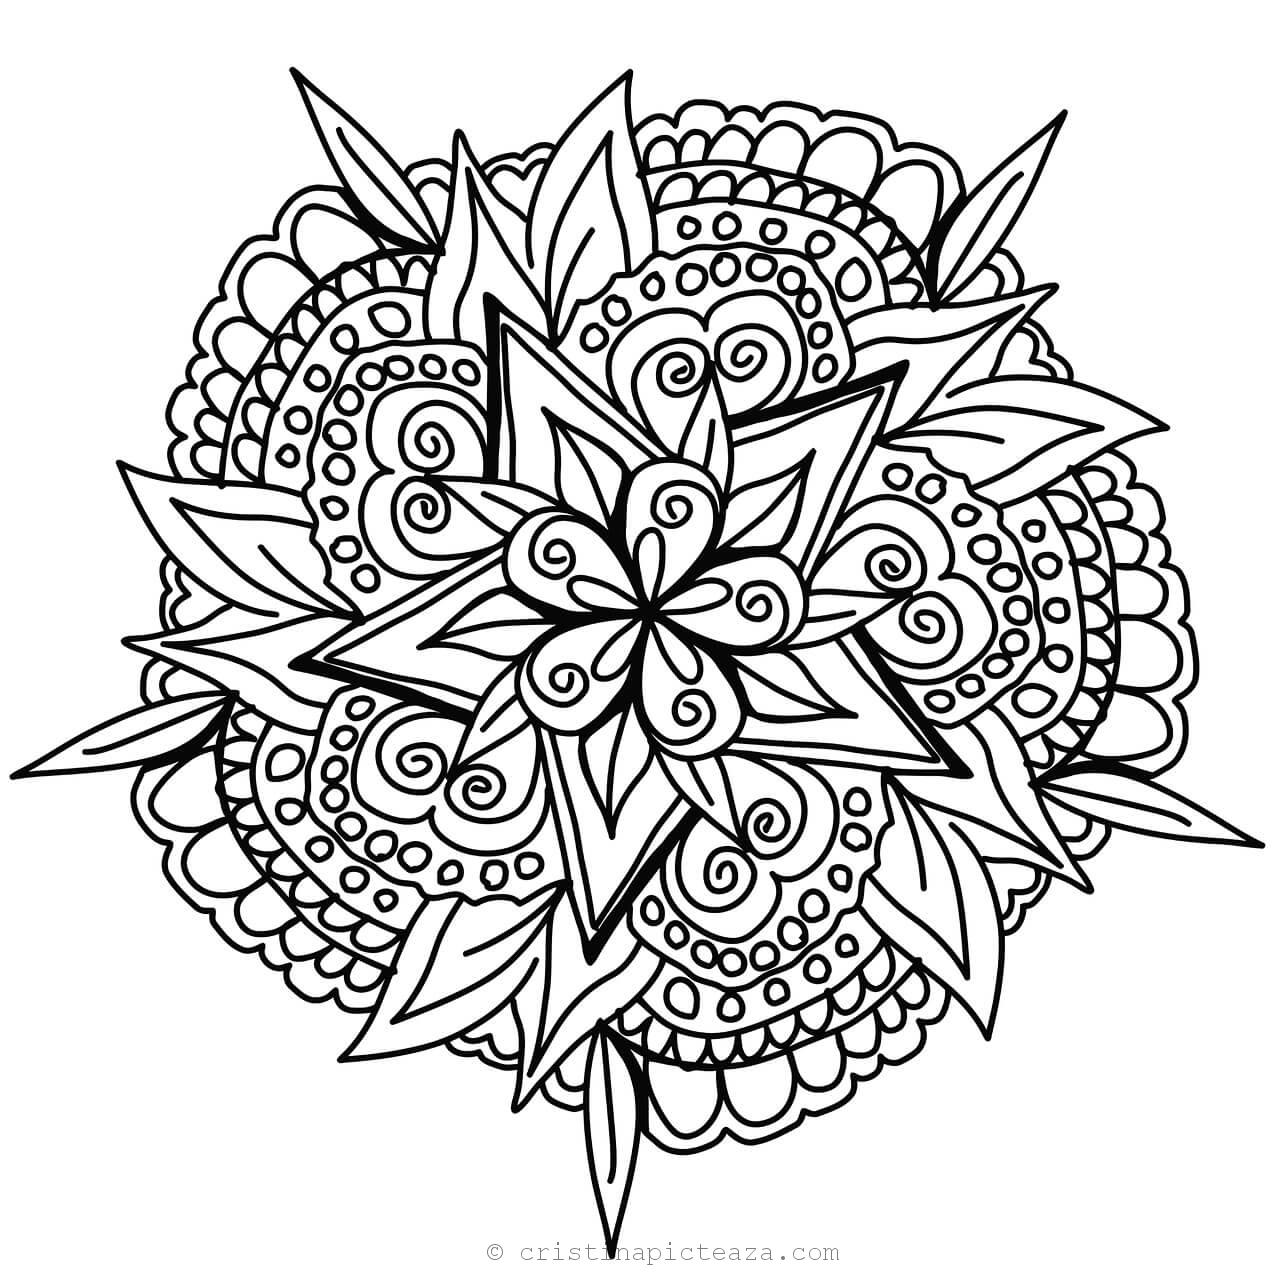 free mandala coloring pages for adults printable mandala coloring pages for kids cool2bkids mandala coloring free pages adults for